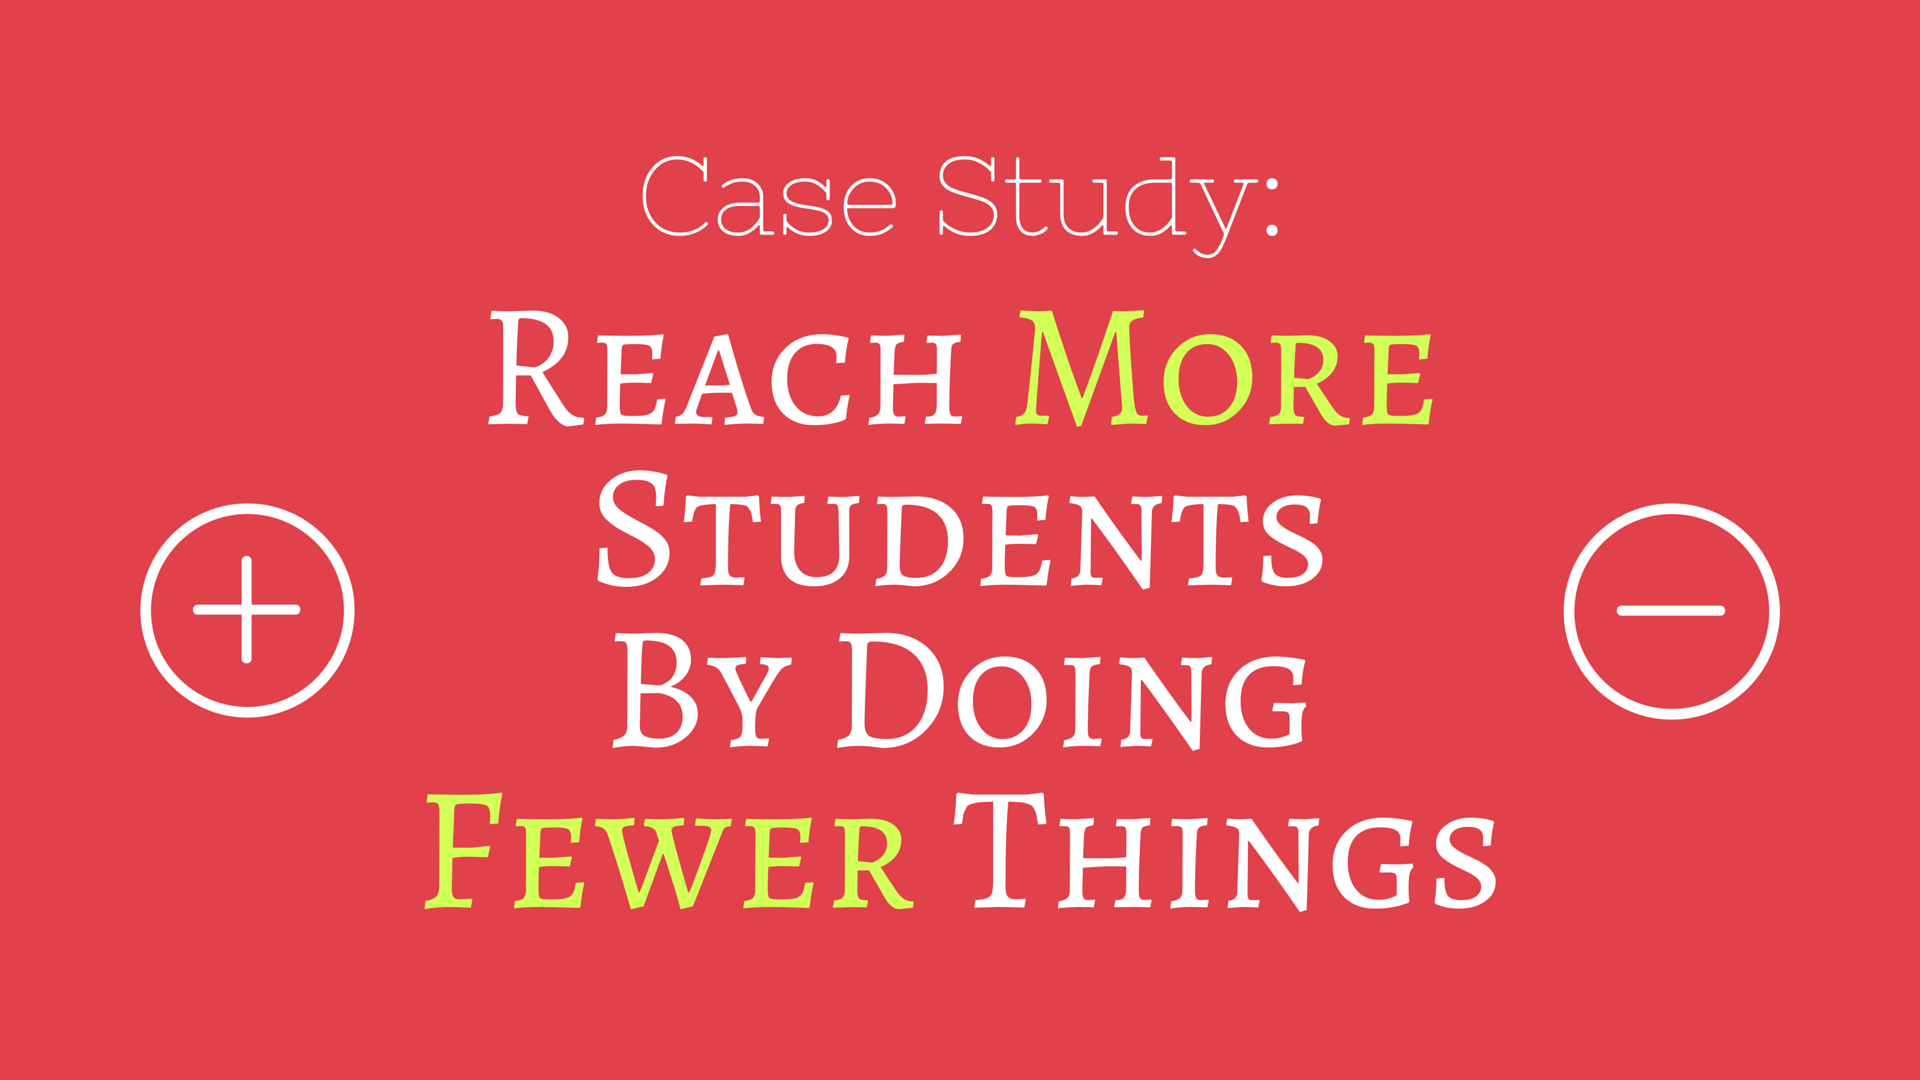 Reach More Students By Doing Fewer Things